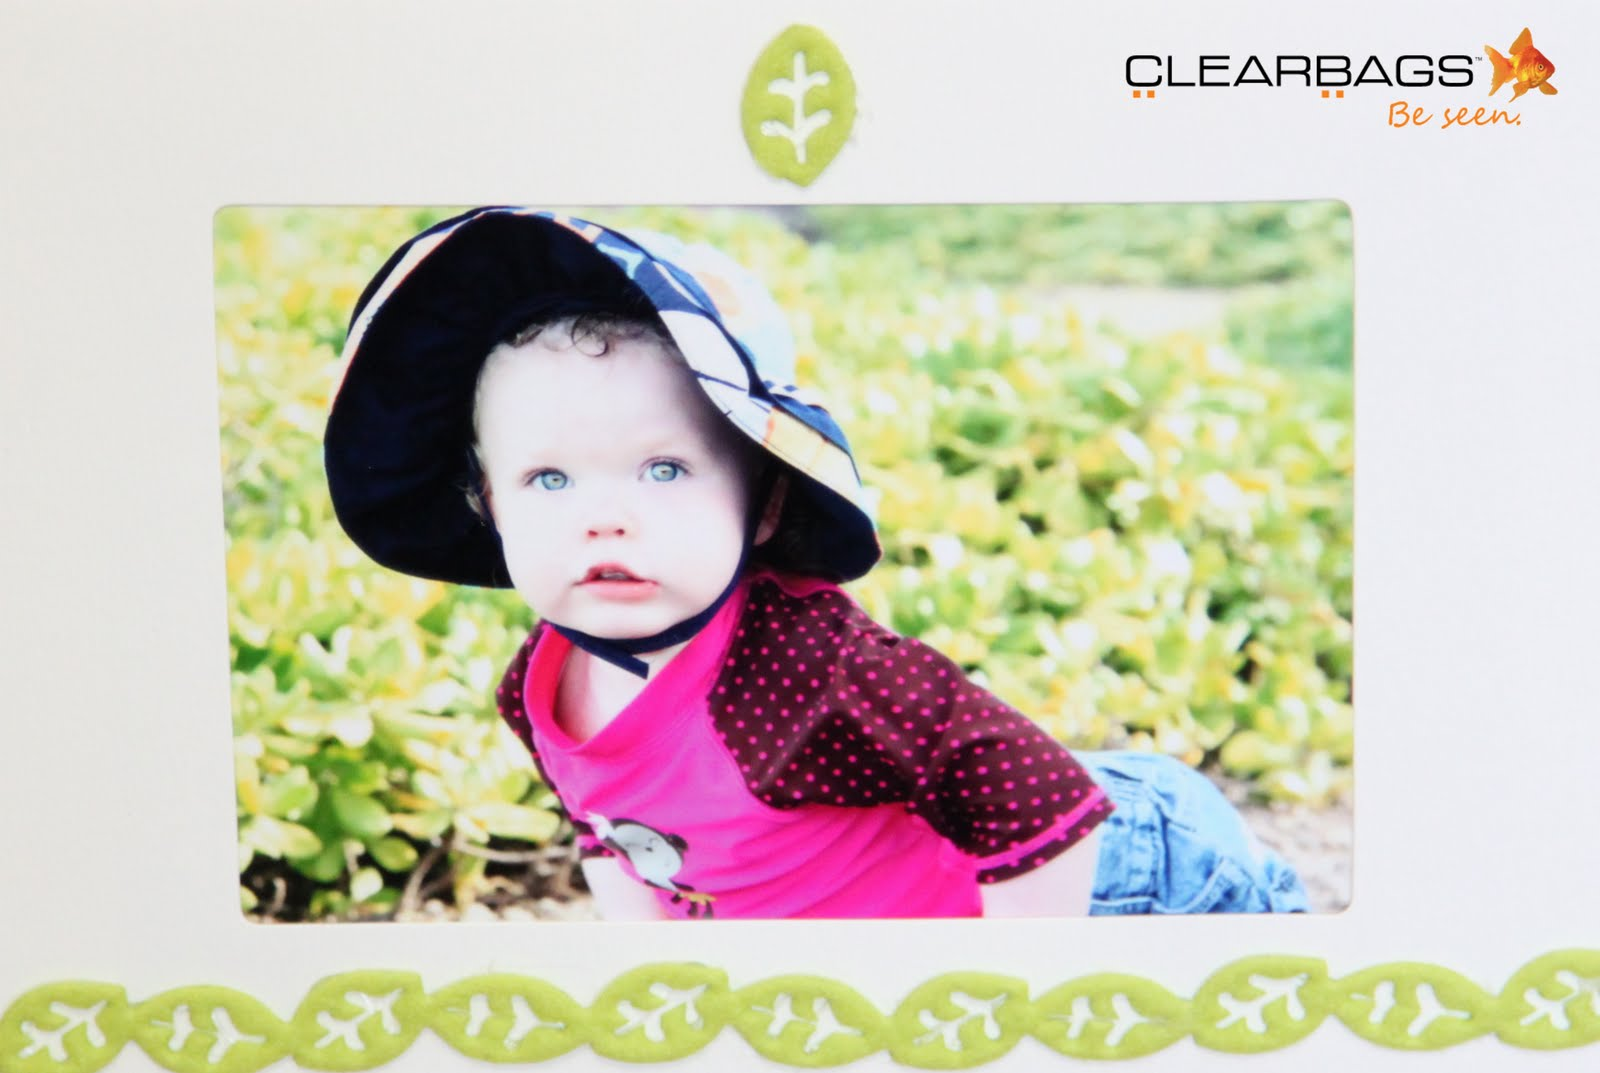 Clearbags coupon code